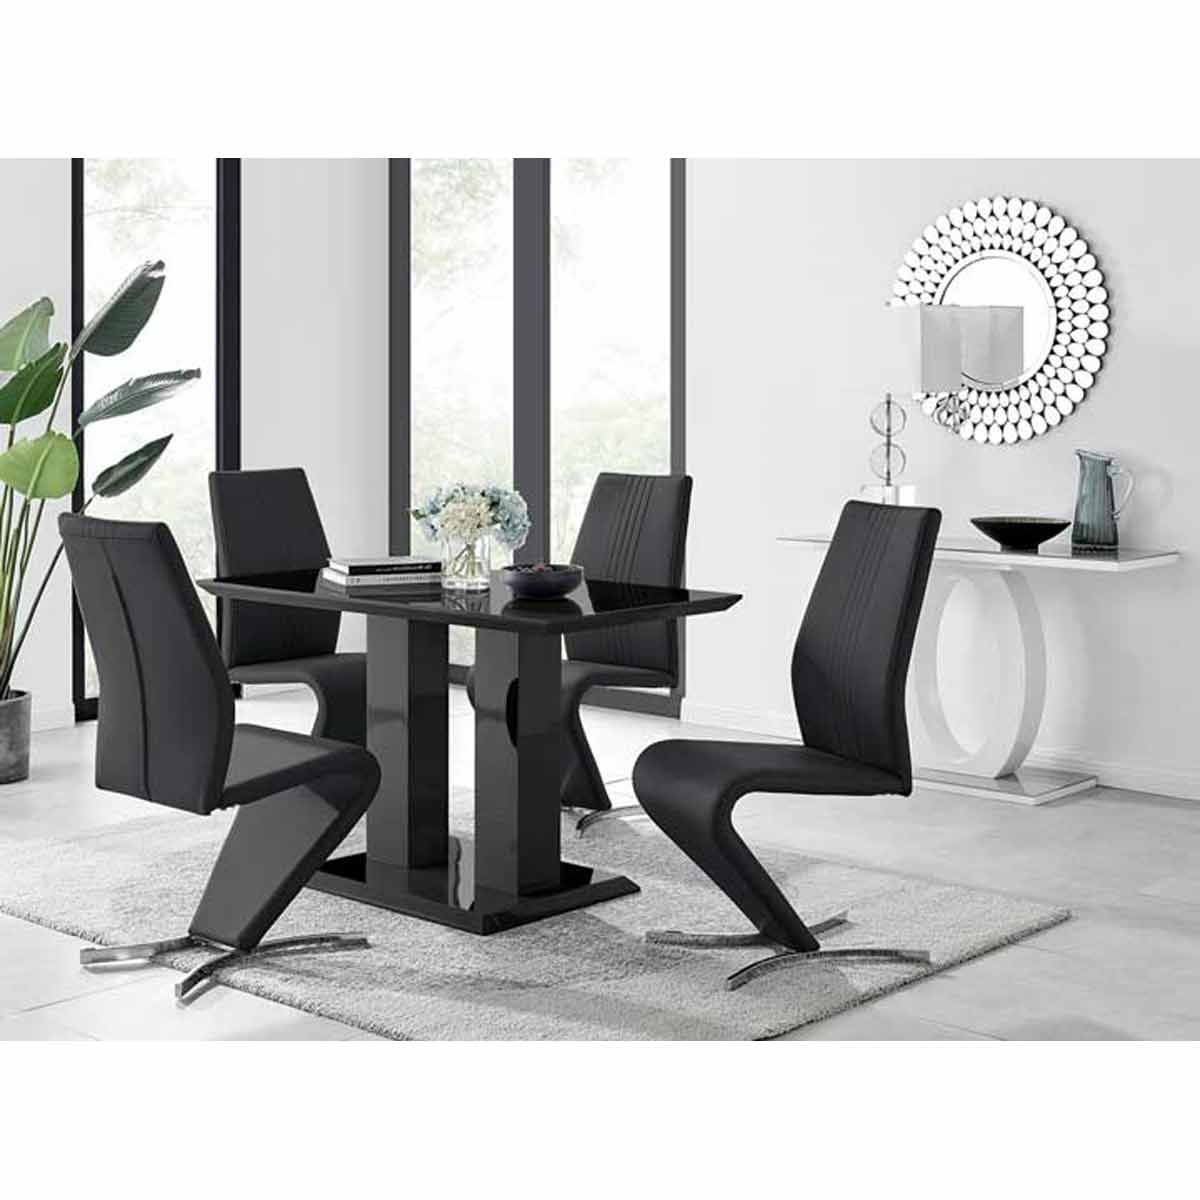 Furniture Box Imperia 4 Modern Black High Gloss Dining Table And 4 Black Luxury Willow Chairs Set